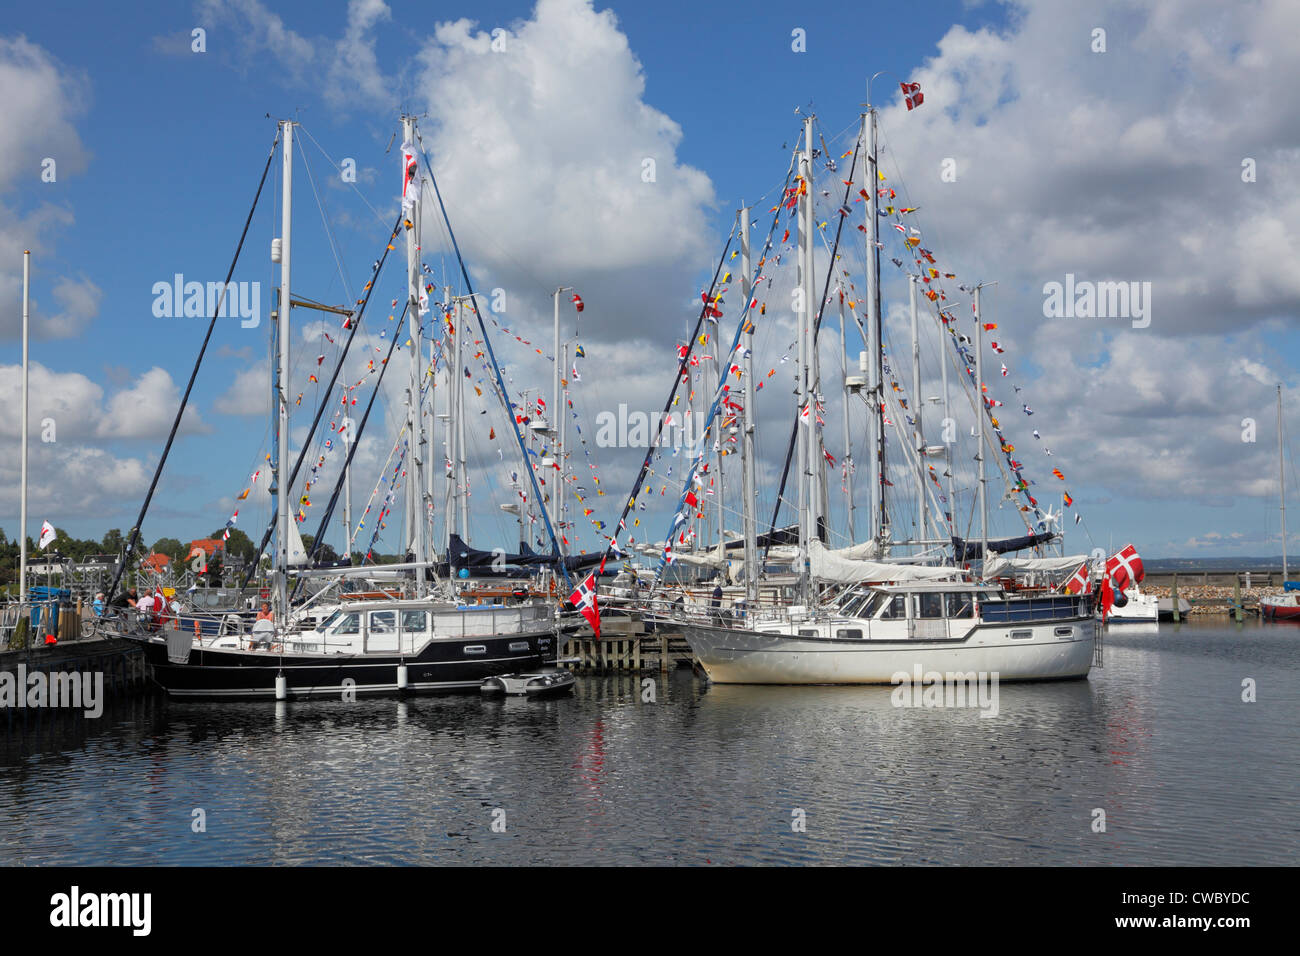 View of many of the about 30 participating Nauticat motorsailers from Scandinavia taking part in the Scandinavian - Stock Image